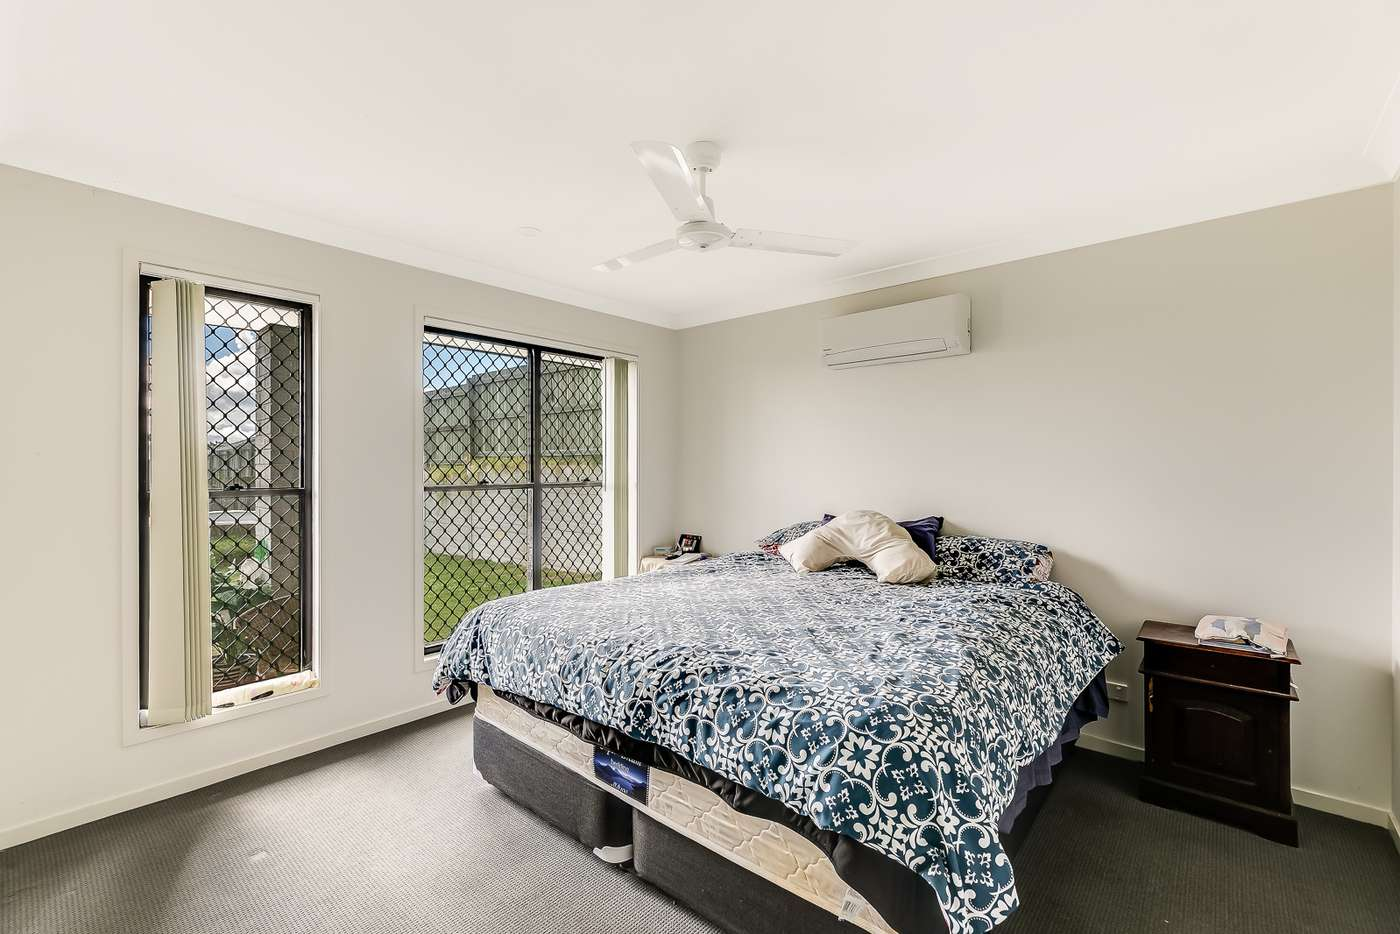 Fifth view of Homely house listing, 10 Menton Place, Harristown QLD 4350